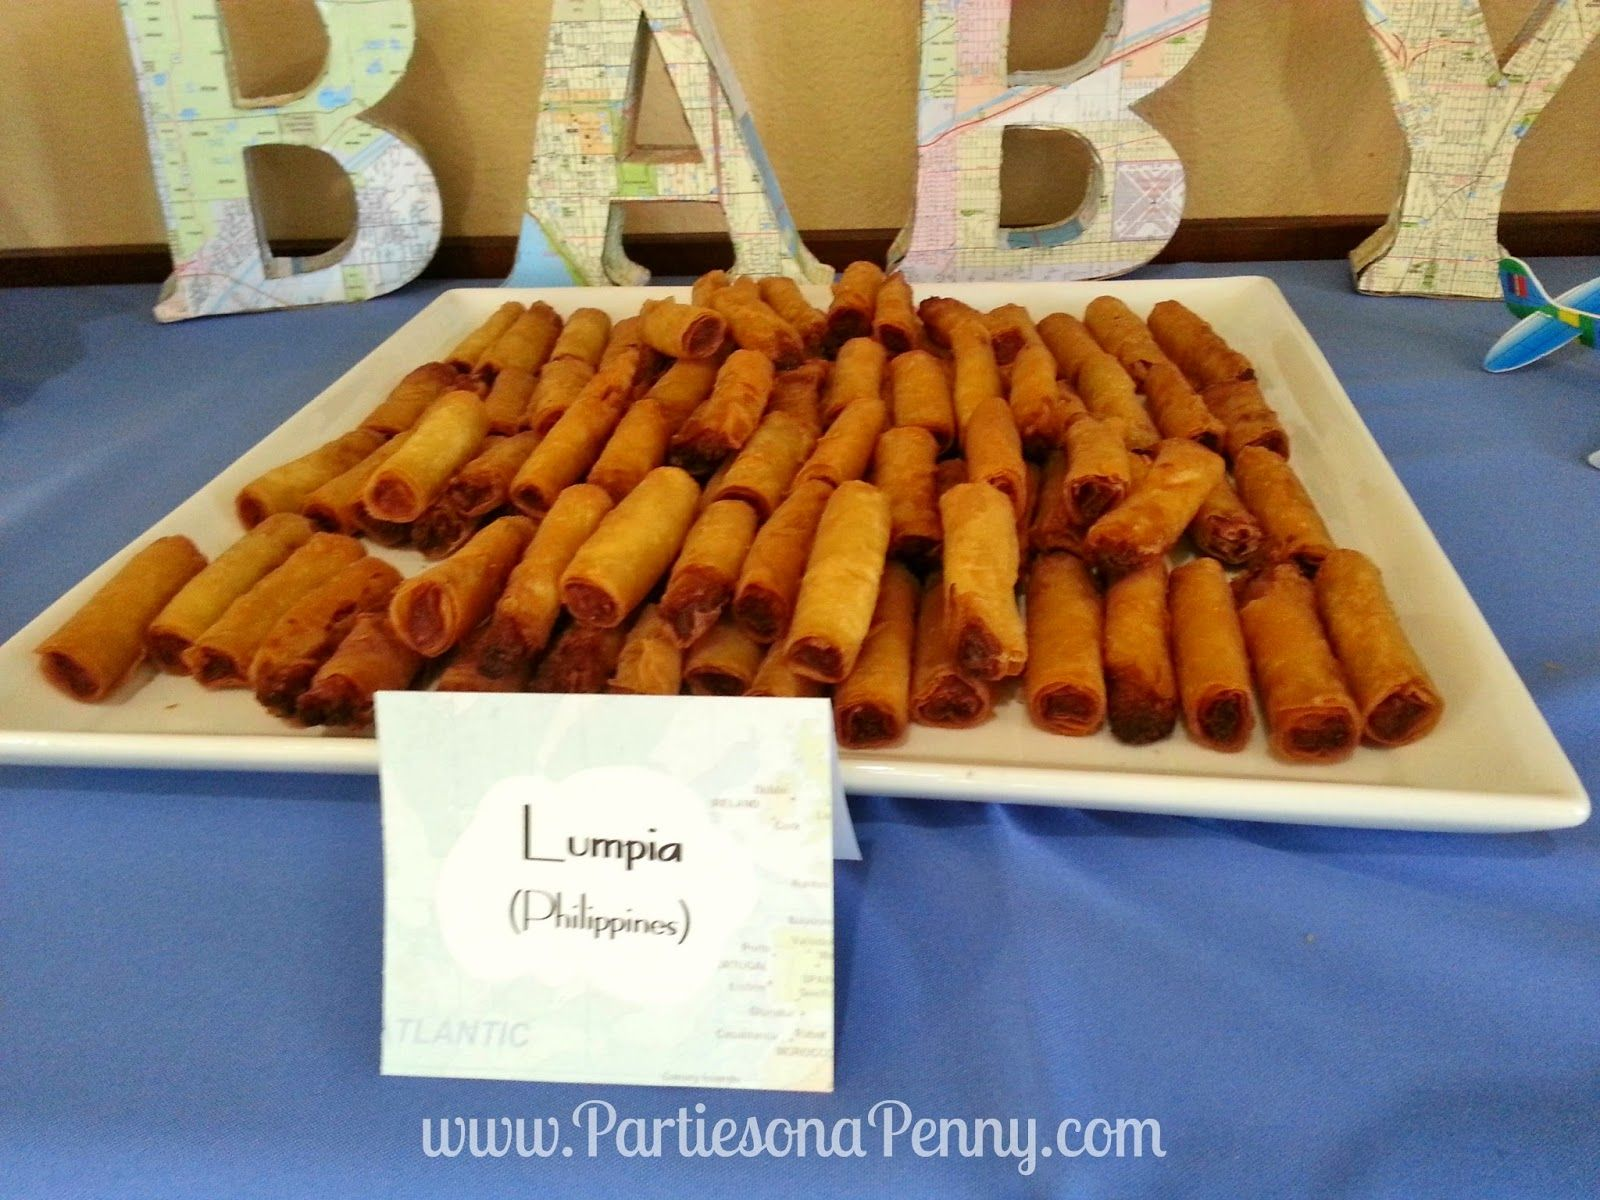 Travel Themed Baby Shower International Appetizers Lumpia From The Philippines Wwwpartiesonapennycom